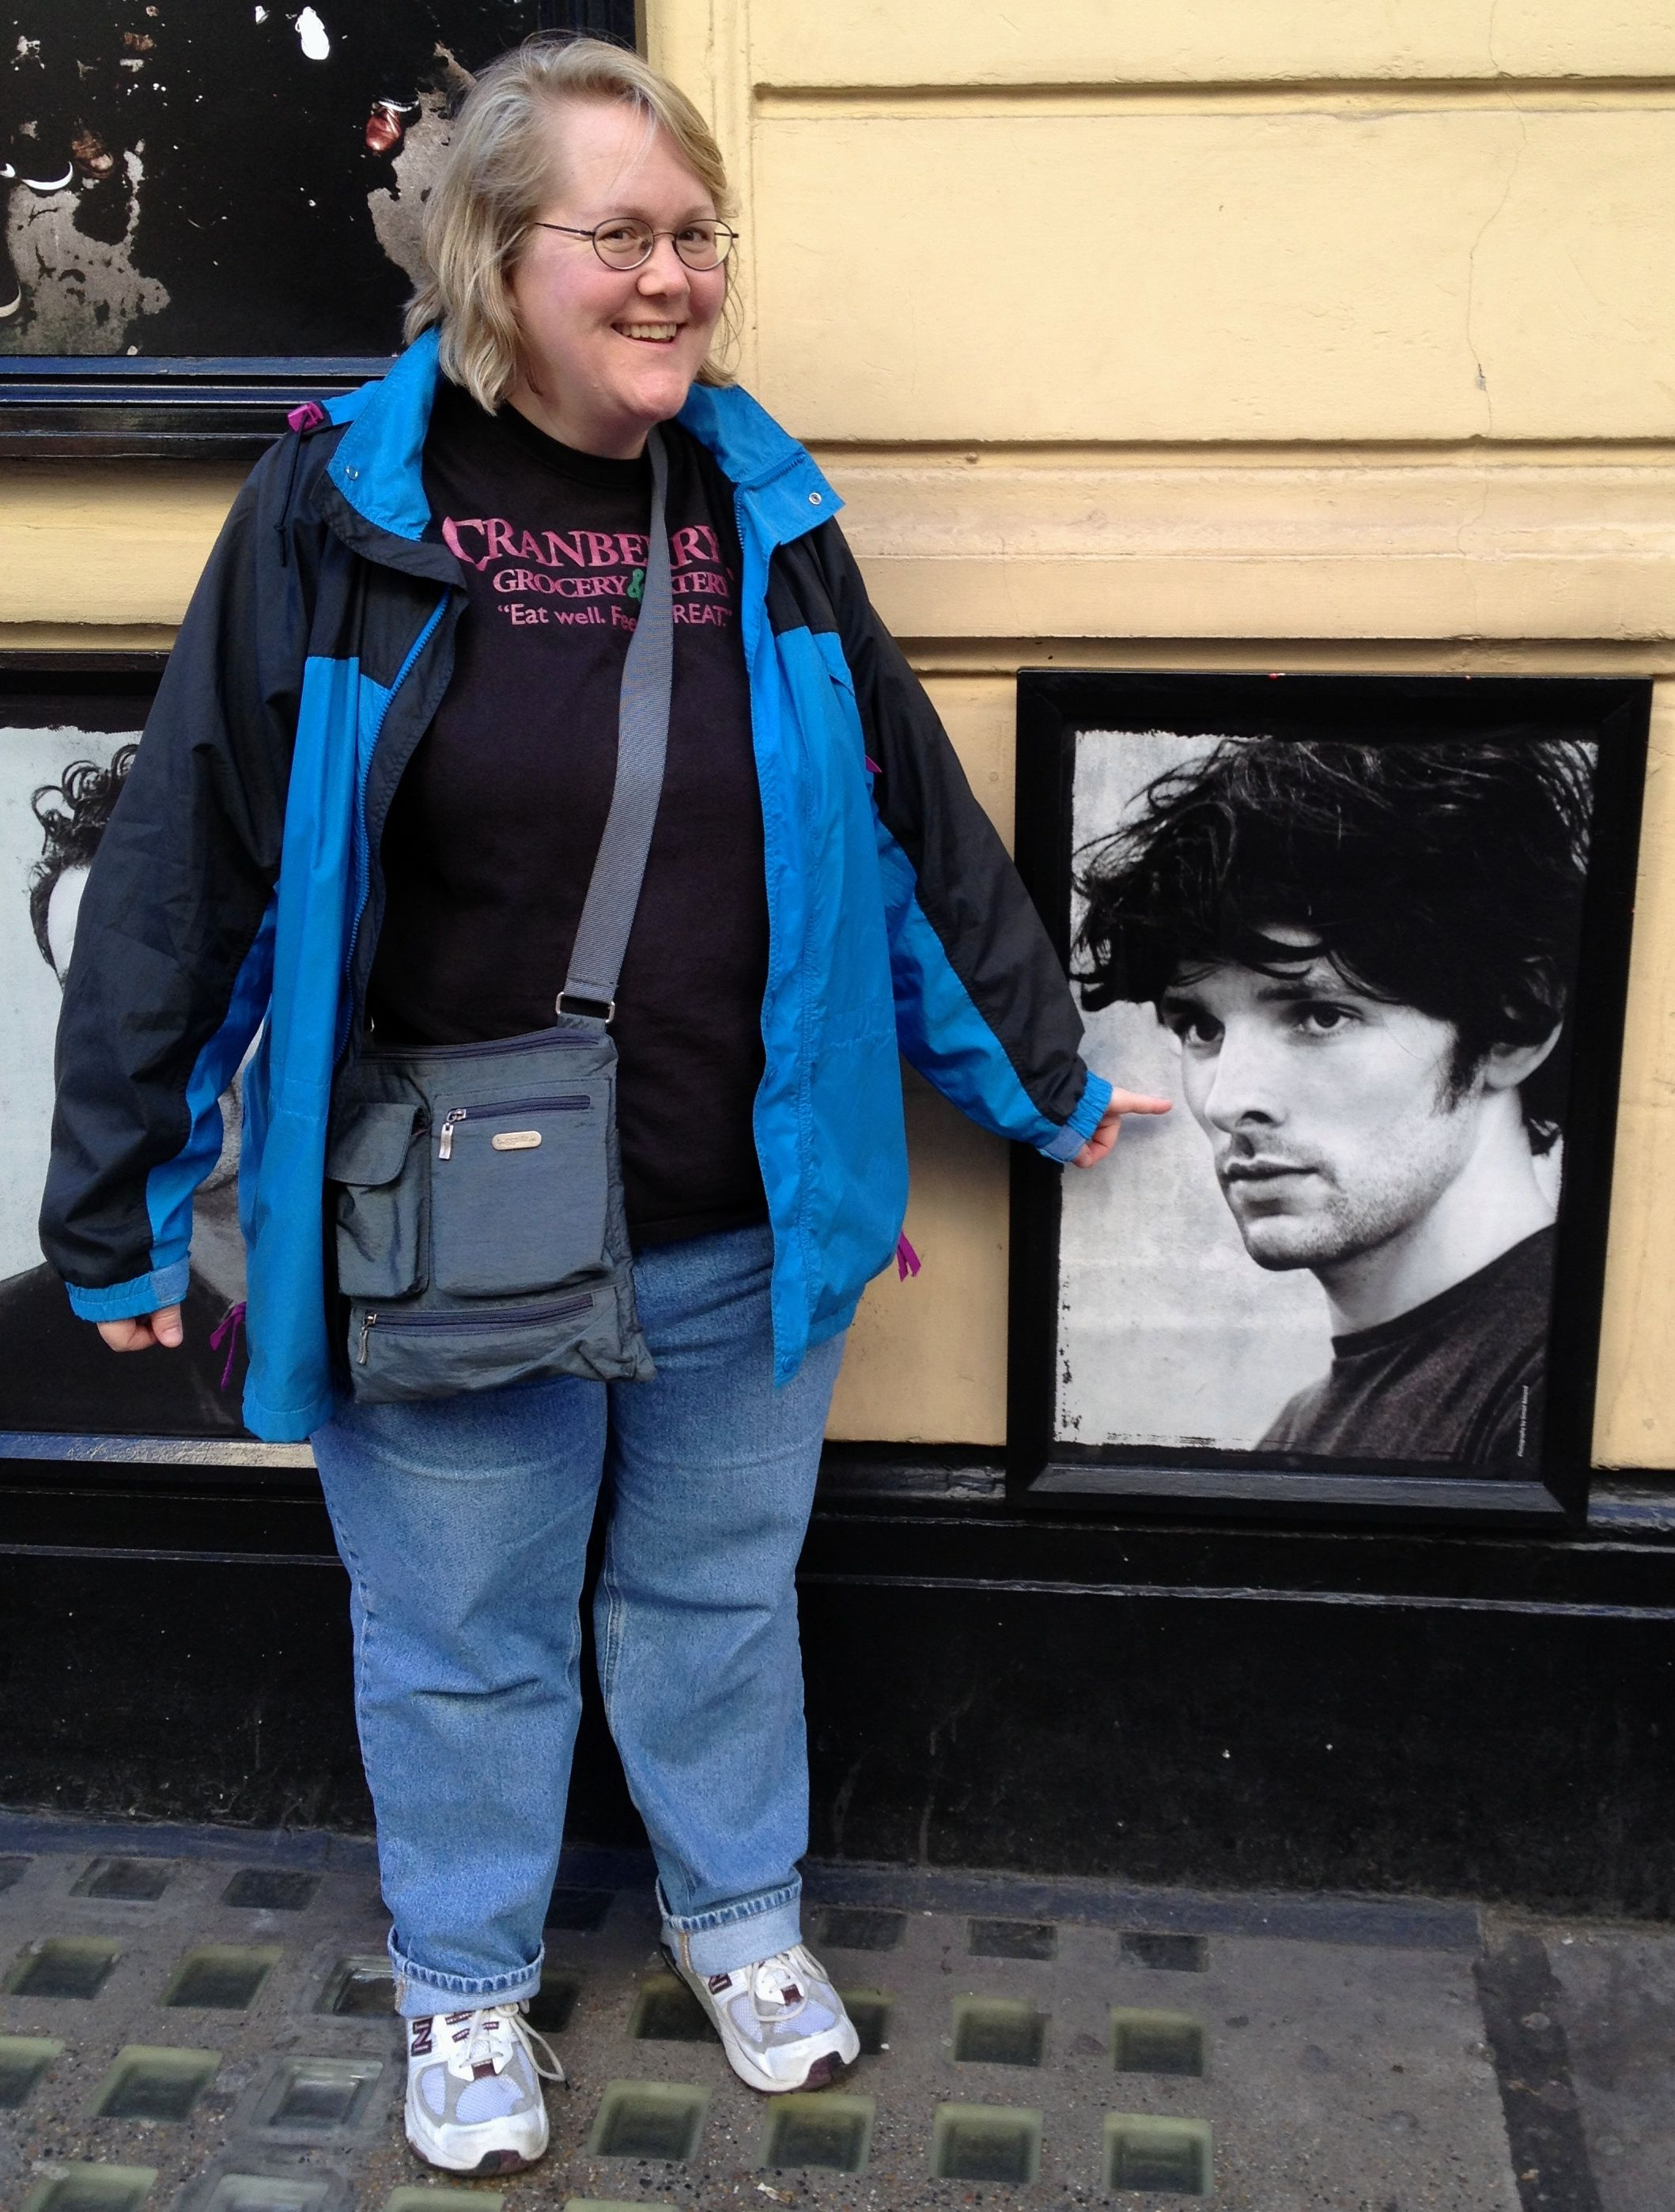 In front of the Harold Pinter theatre. I thought this would be the closest I would get to Mr. Morgan.